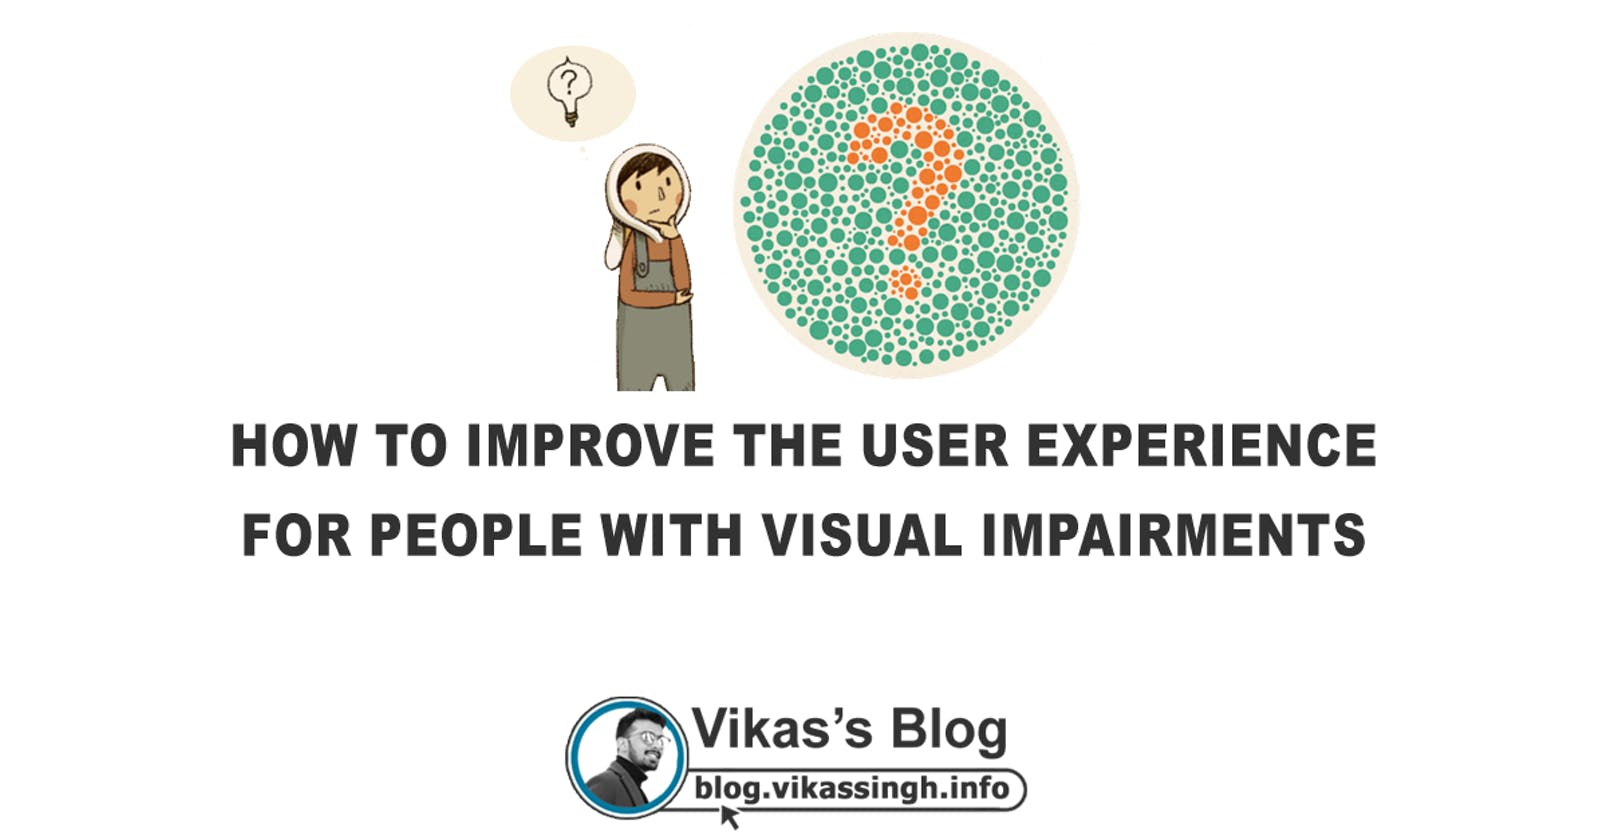 How To Improve The User Experience For People With Visual Impairments